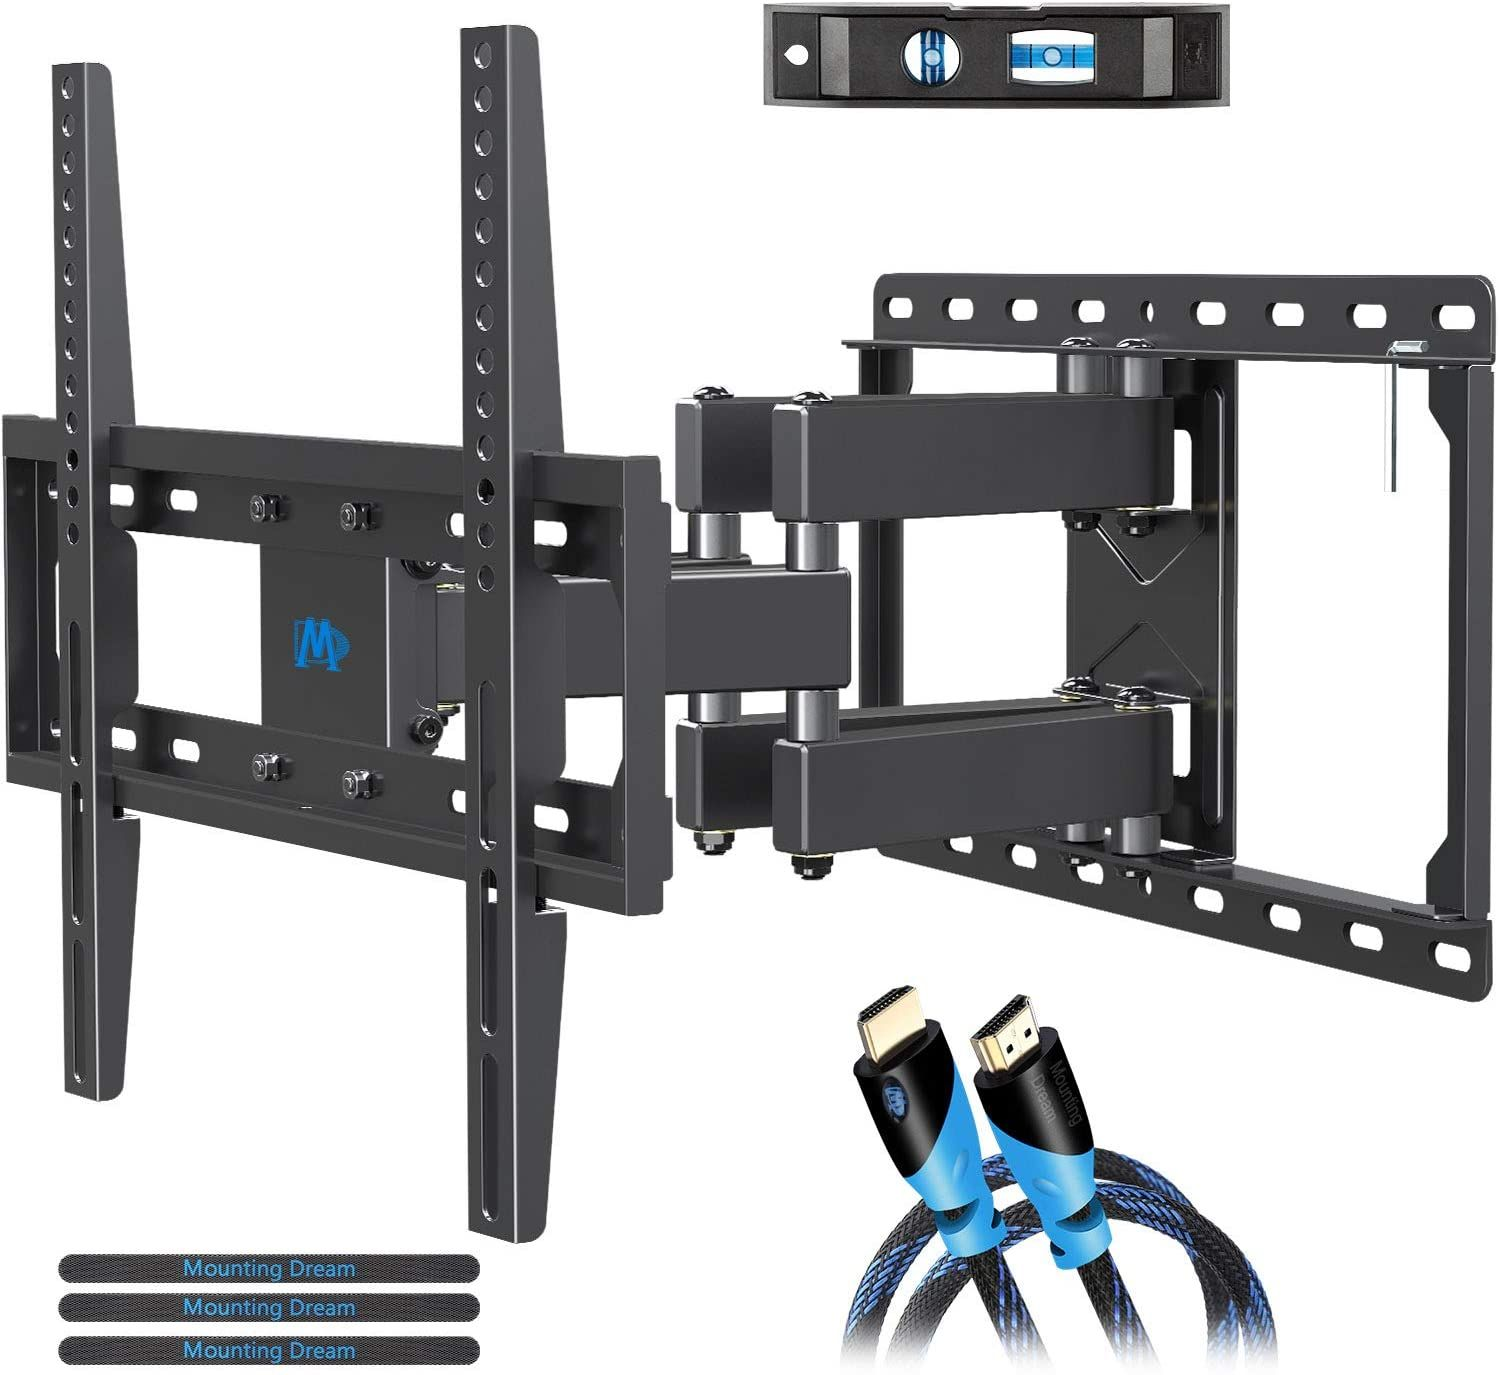 Mounting Dream Tv Wall Mounts Tv Bracket For Most 32 55 Inch Flat Screen Tv Mount Bracket Full In 2020 Wall Mounted Tv Best Tv Wall Mount Full Motion Tv Wall Mount